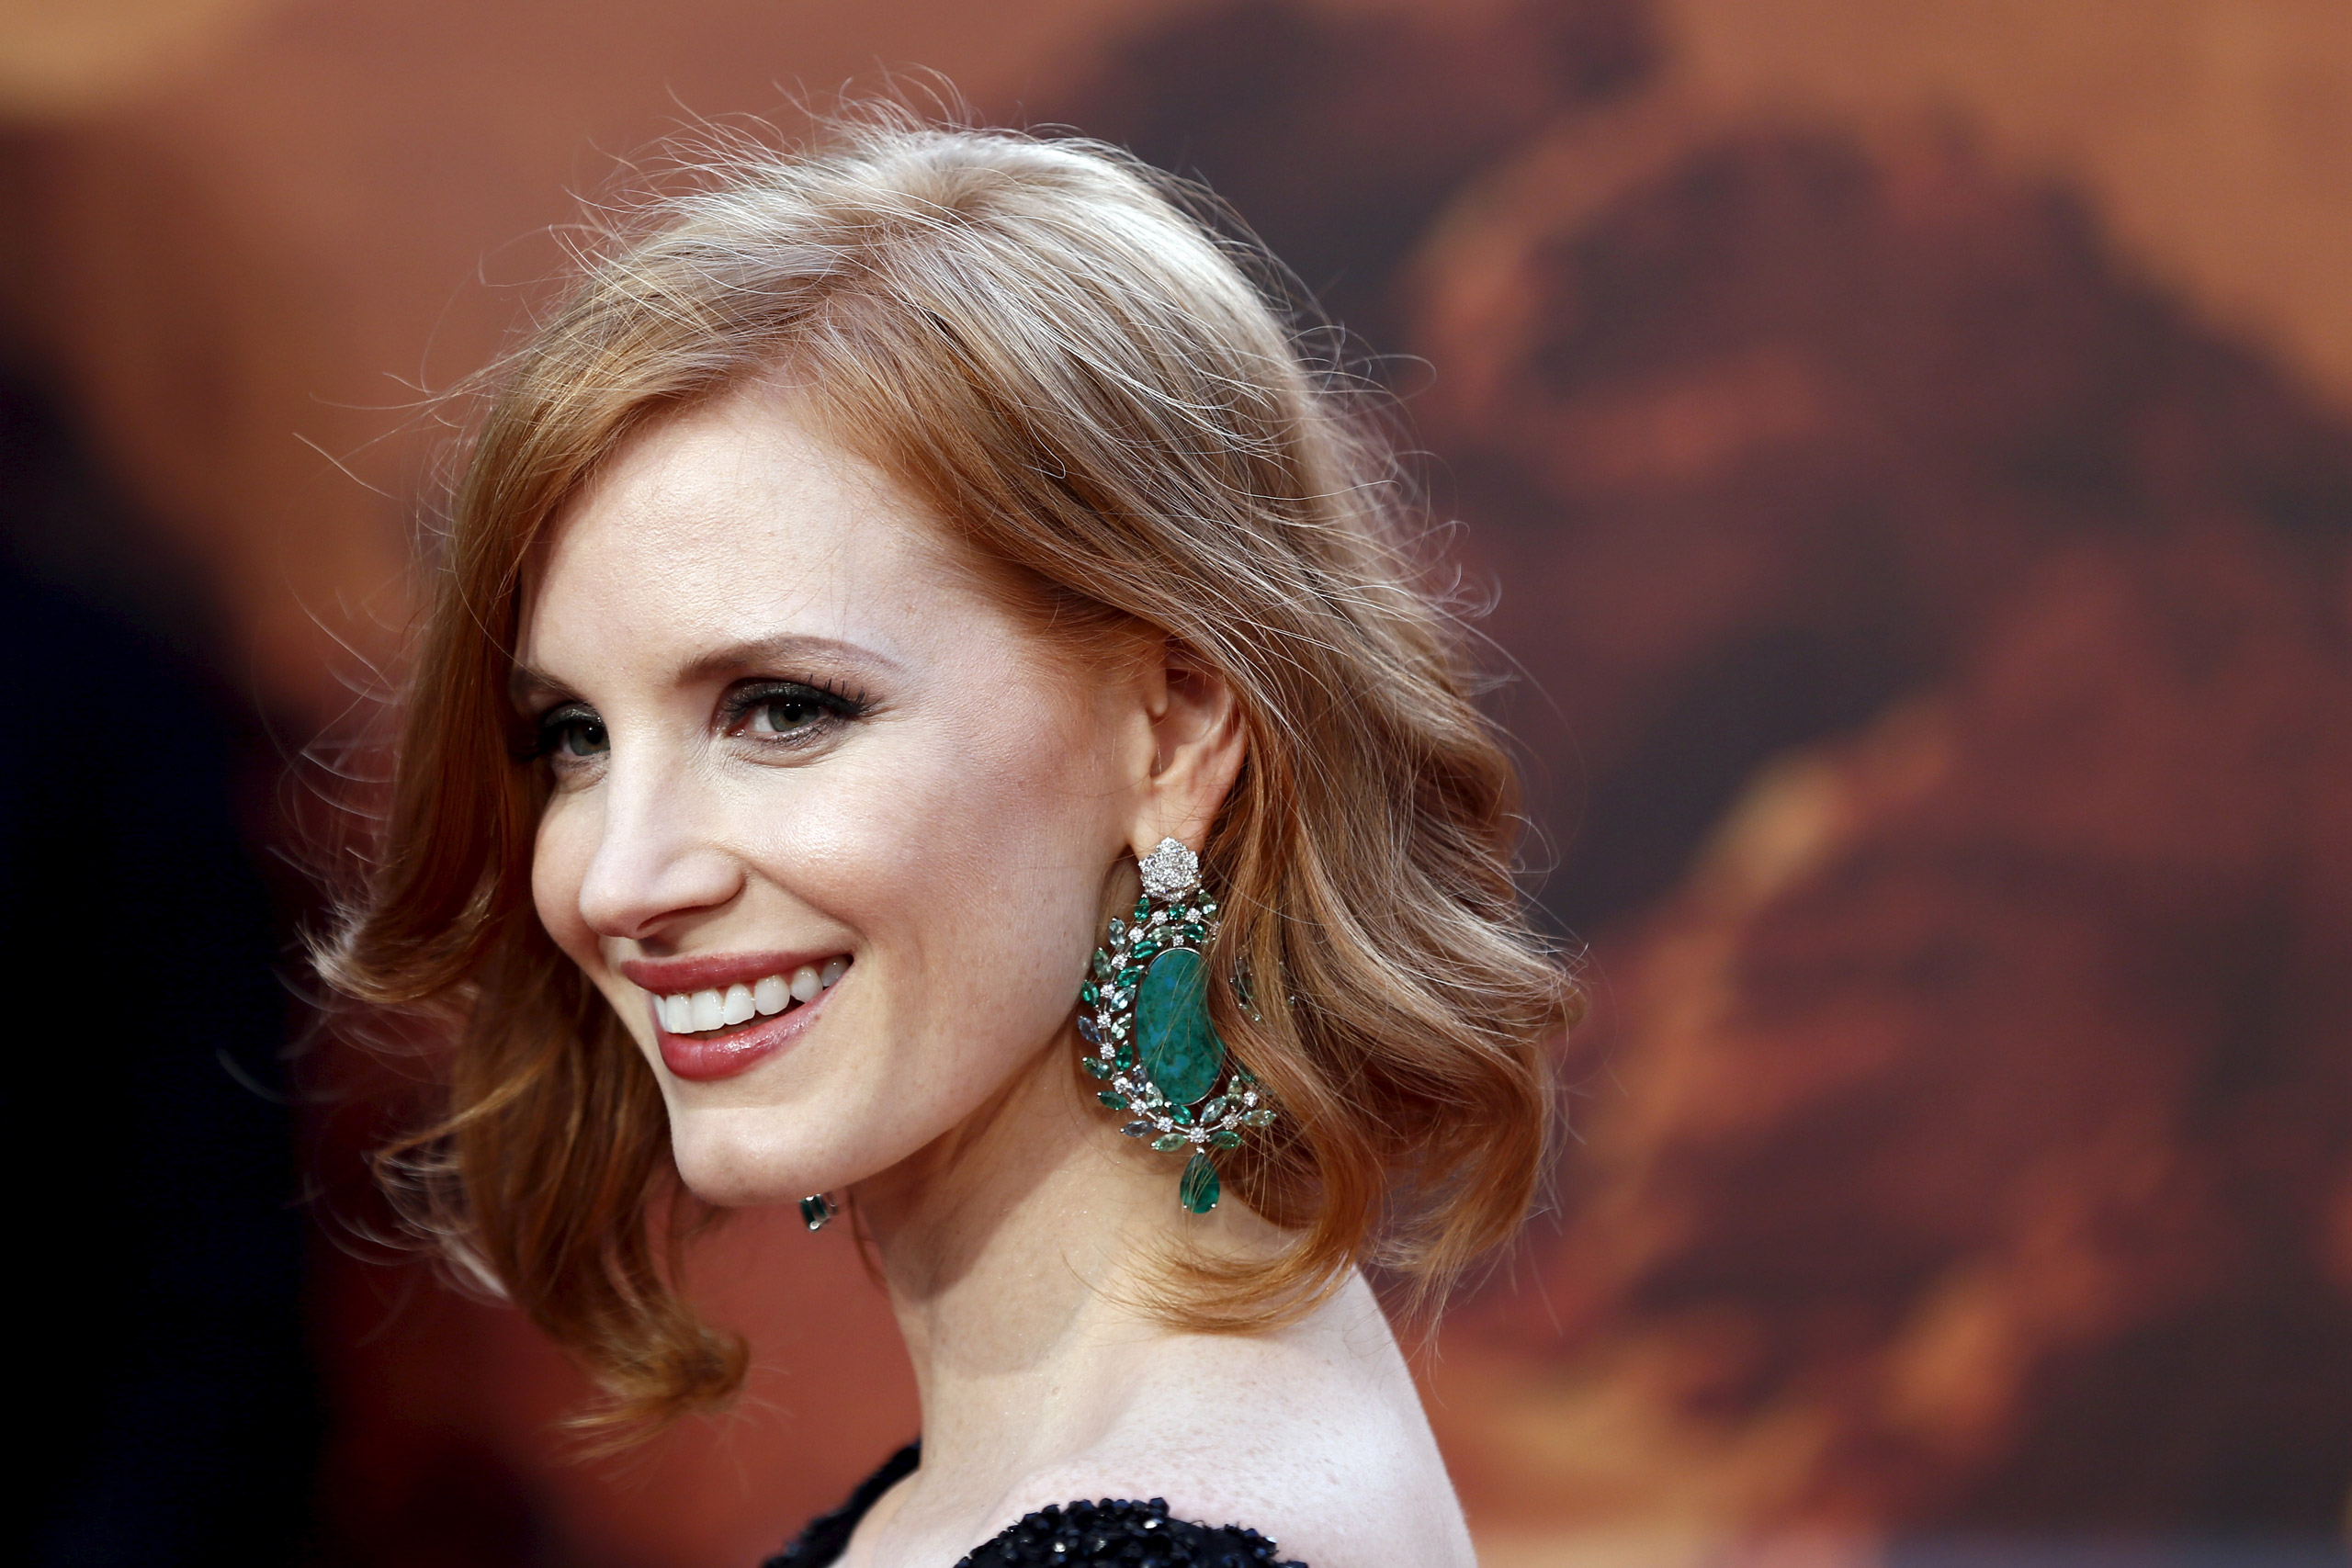 Jessica Chastain arrives for the UK premiere of  The Martian  at Leicester Square in London on Sept. 24, 2015.